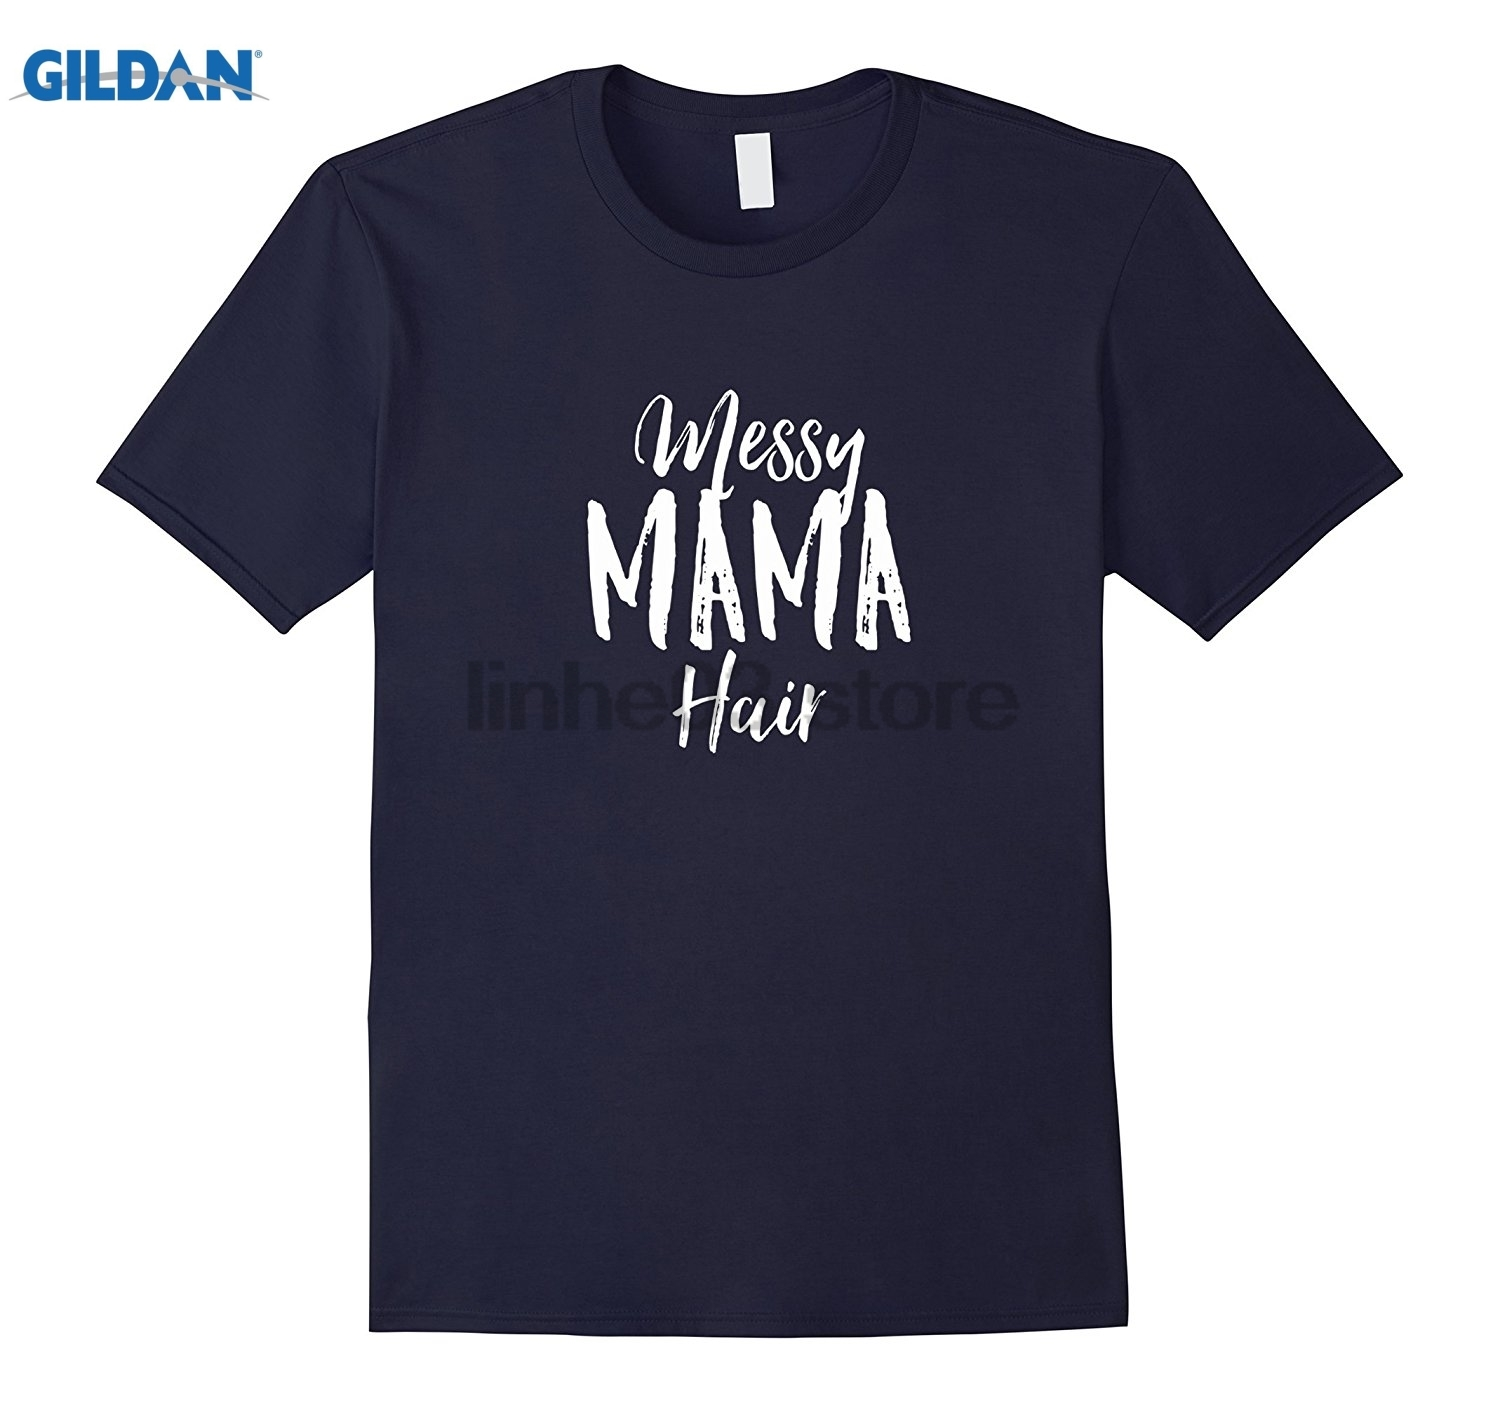 GILDAN Messy Mama Hair T-Shirt - Funny Mother Gift Hairstyle Tee summer dress T-shirt ...